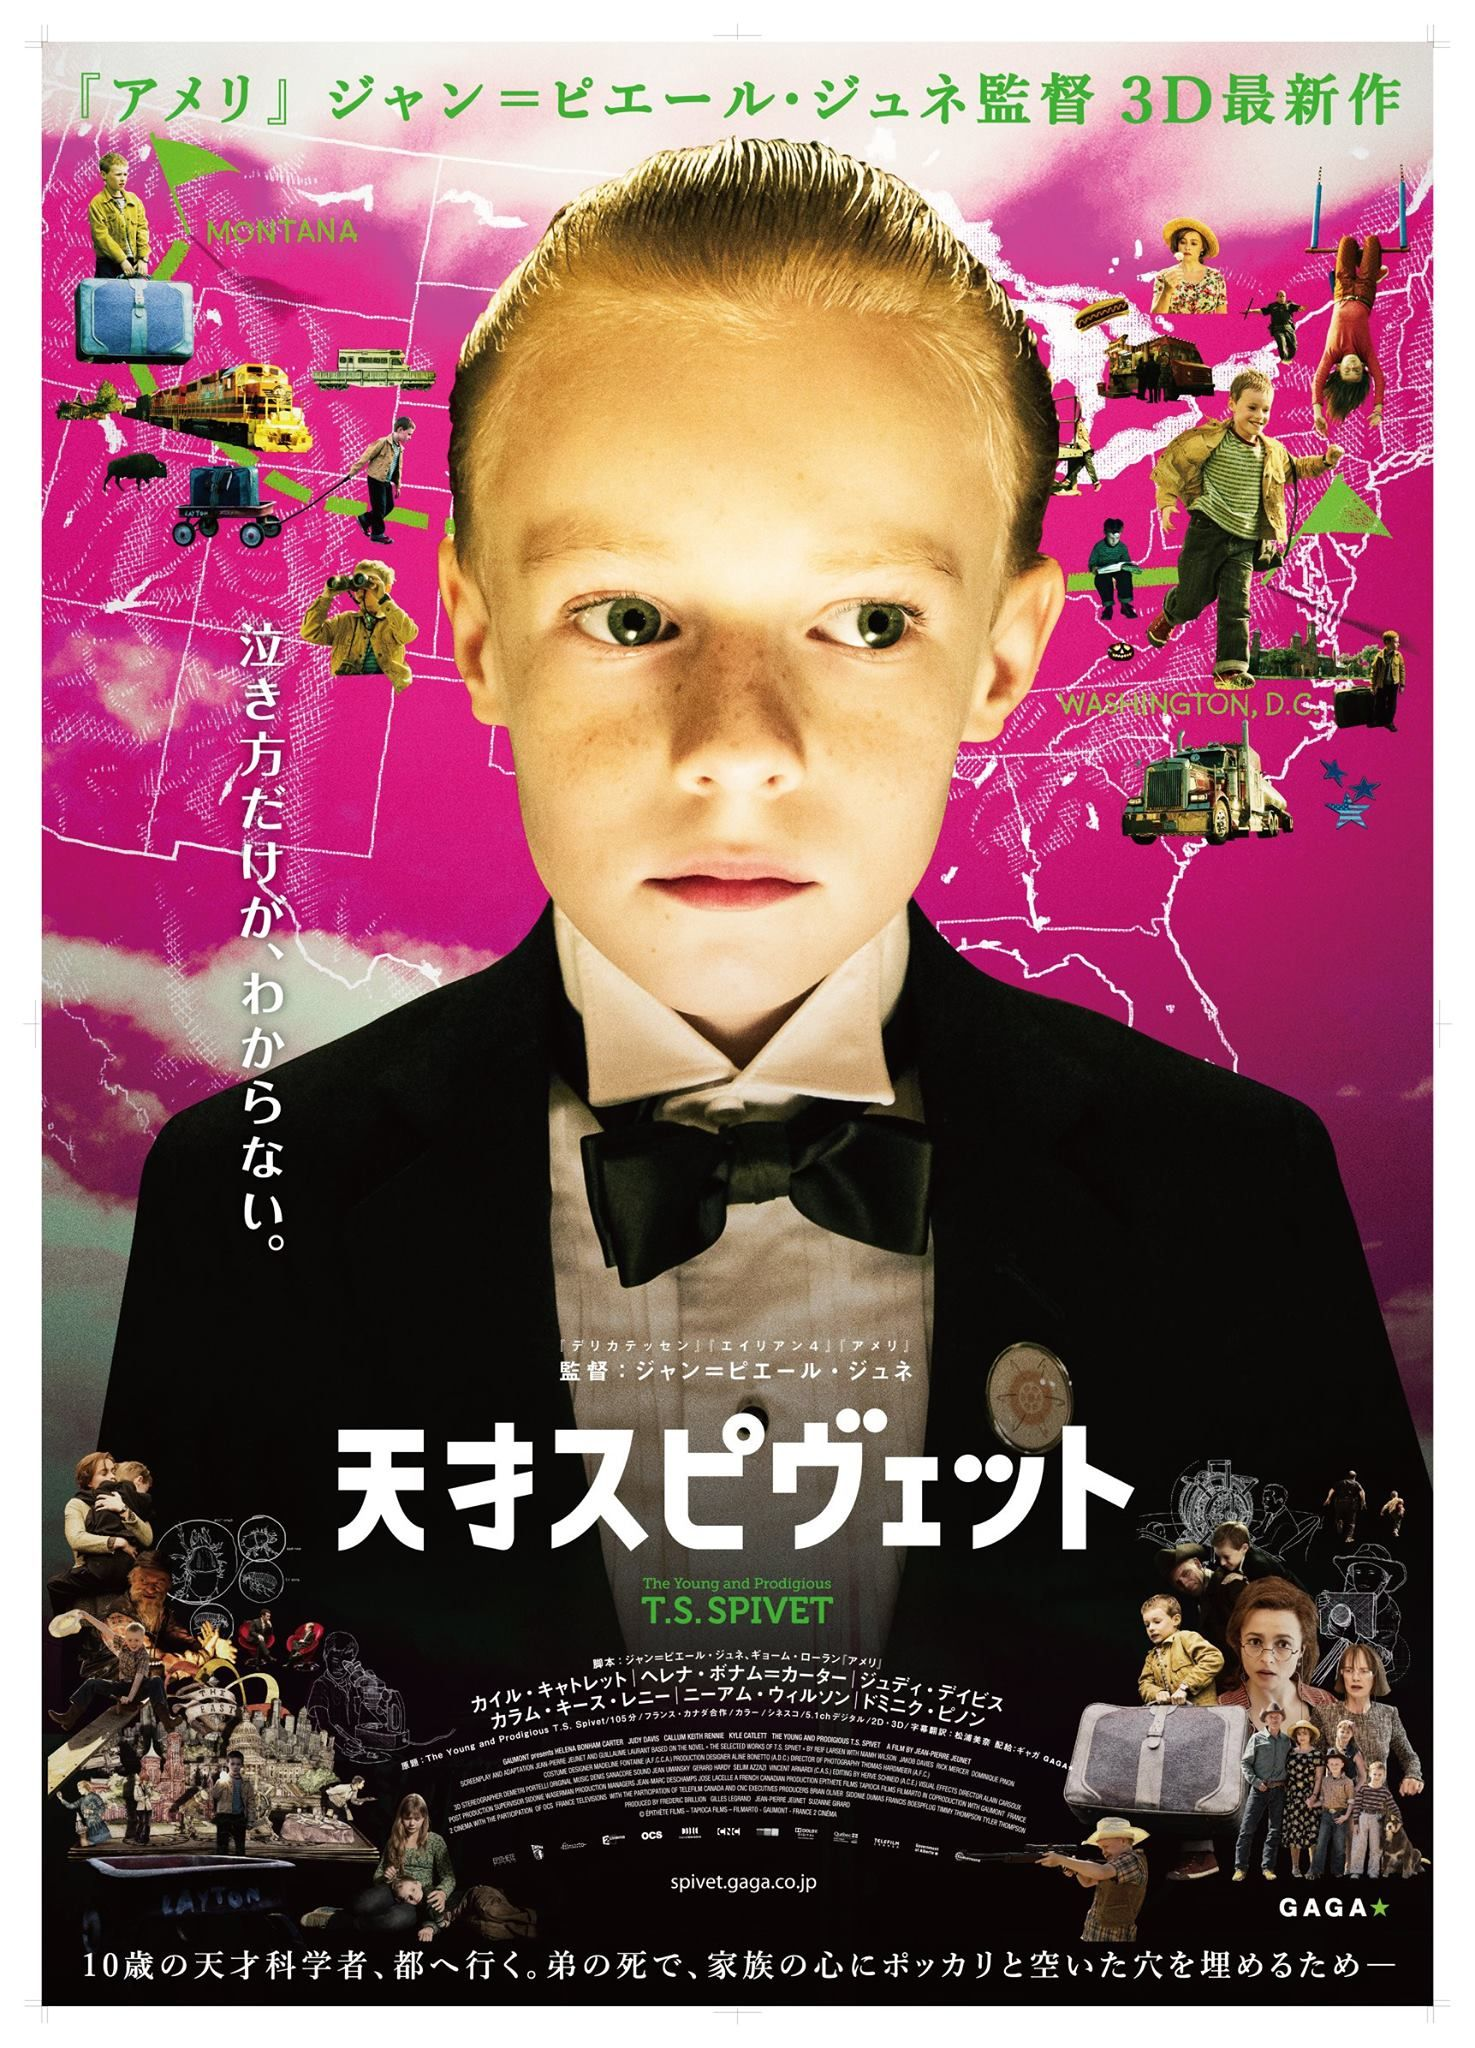 THE YOUNG AND PRODIGIOUS T.S. SPIVET 天才スピヴェット, 映画 ポスター, 映画